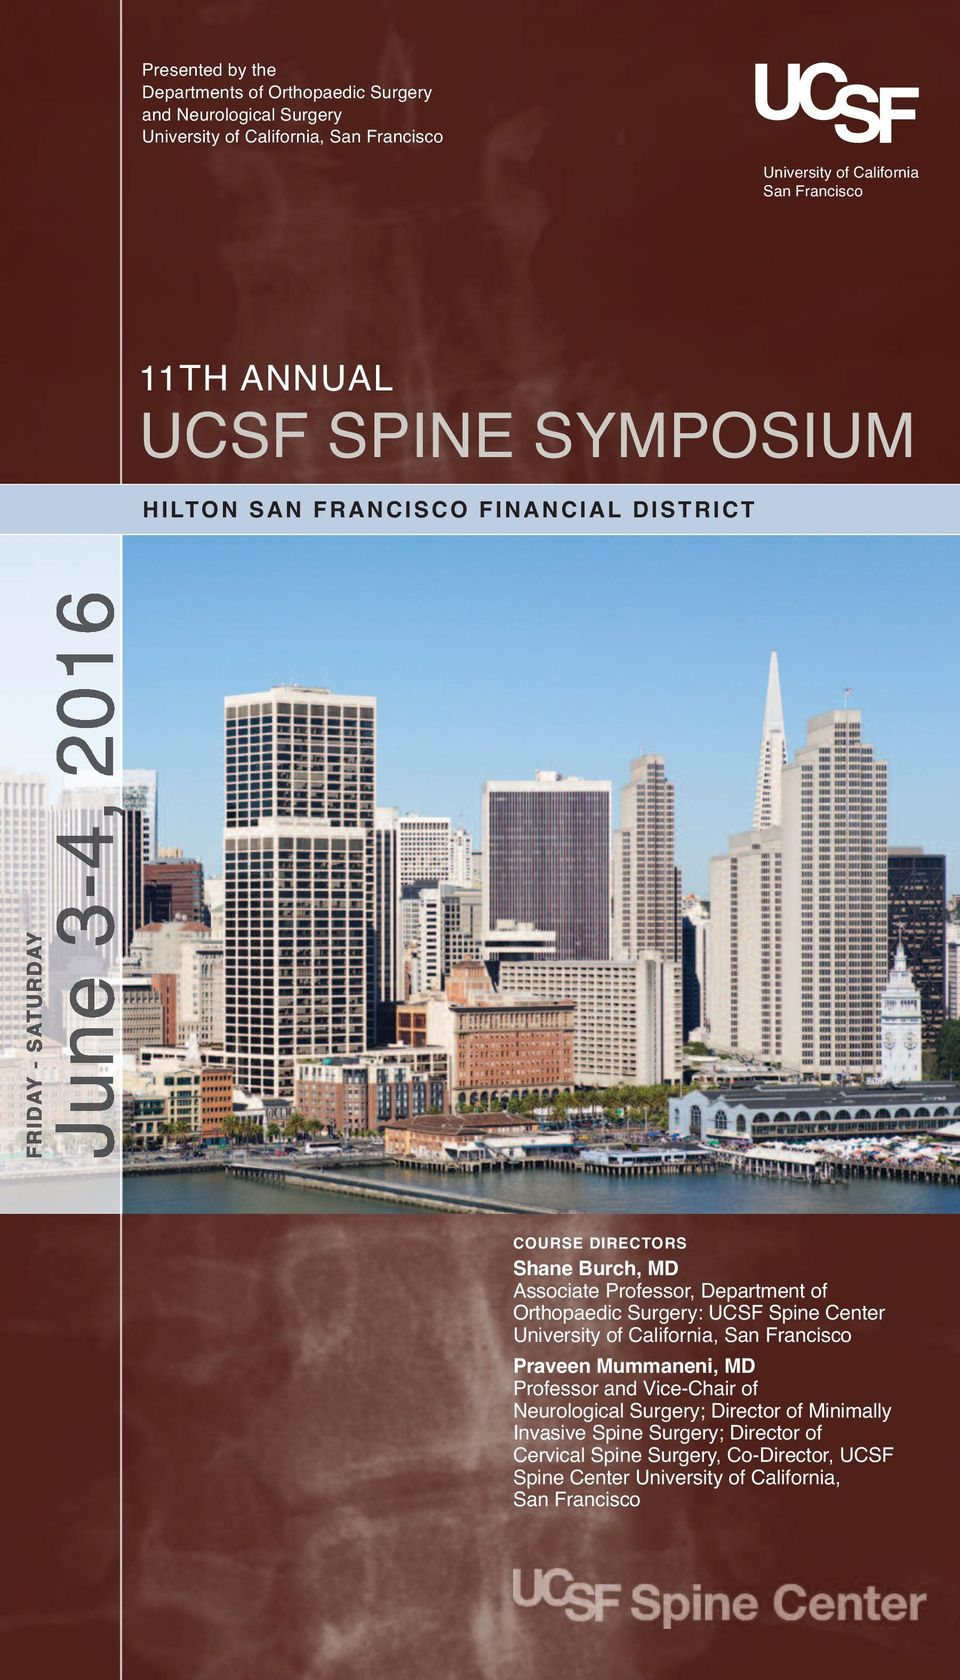 UCSF SPINE SYMPOSIUM 11TH ANNUAL  Presented by the Departments of